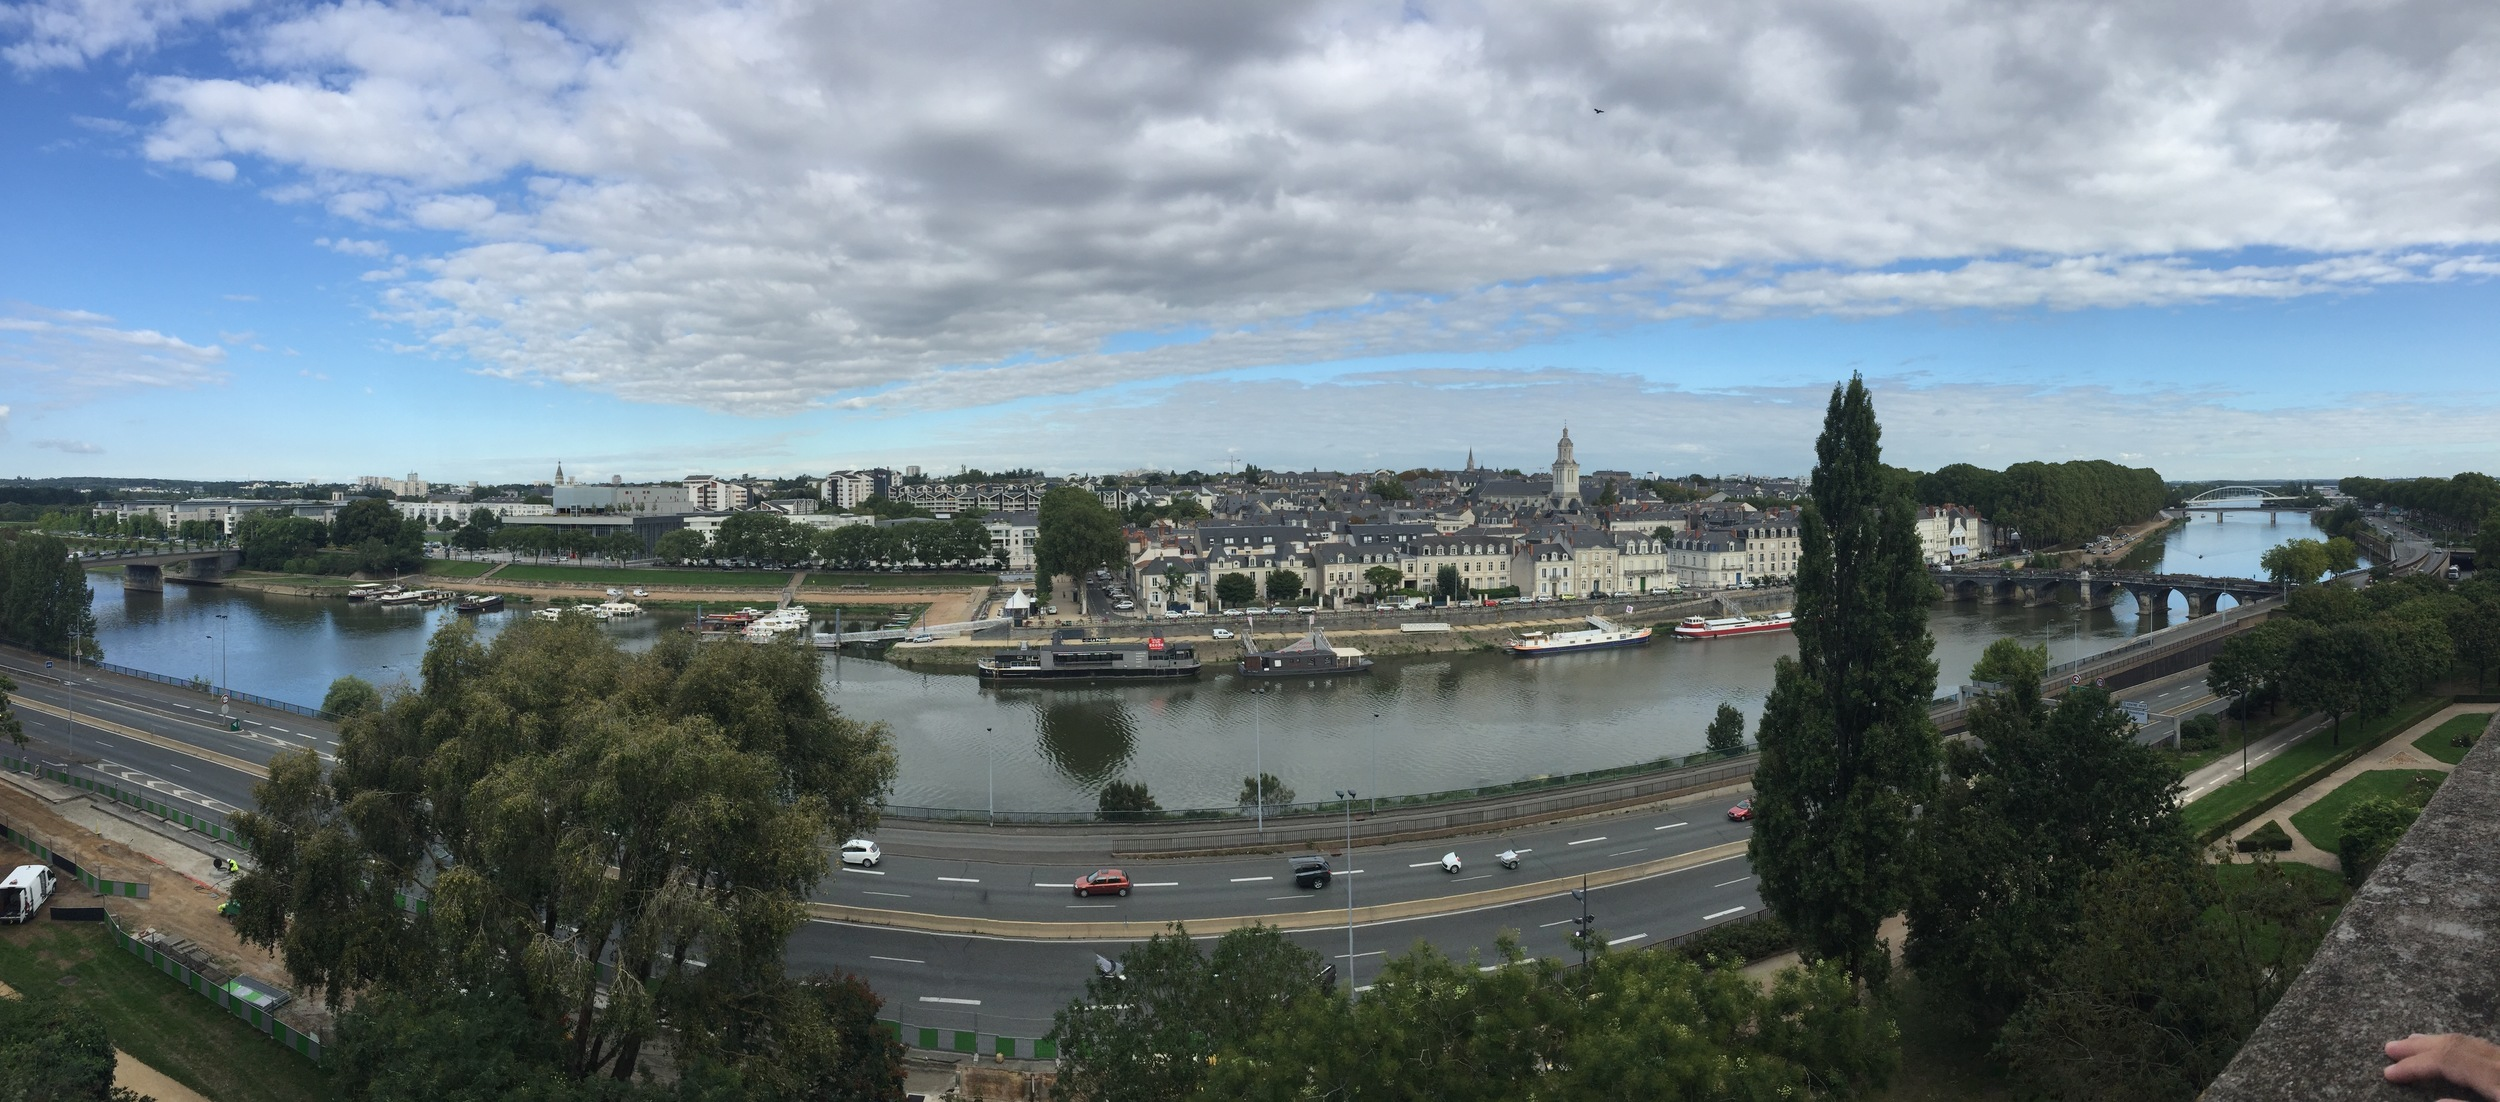 View from the chateau of La Maine and Angers.